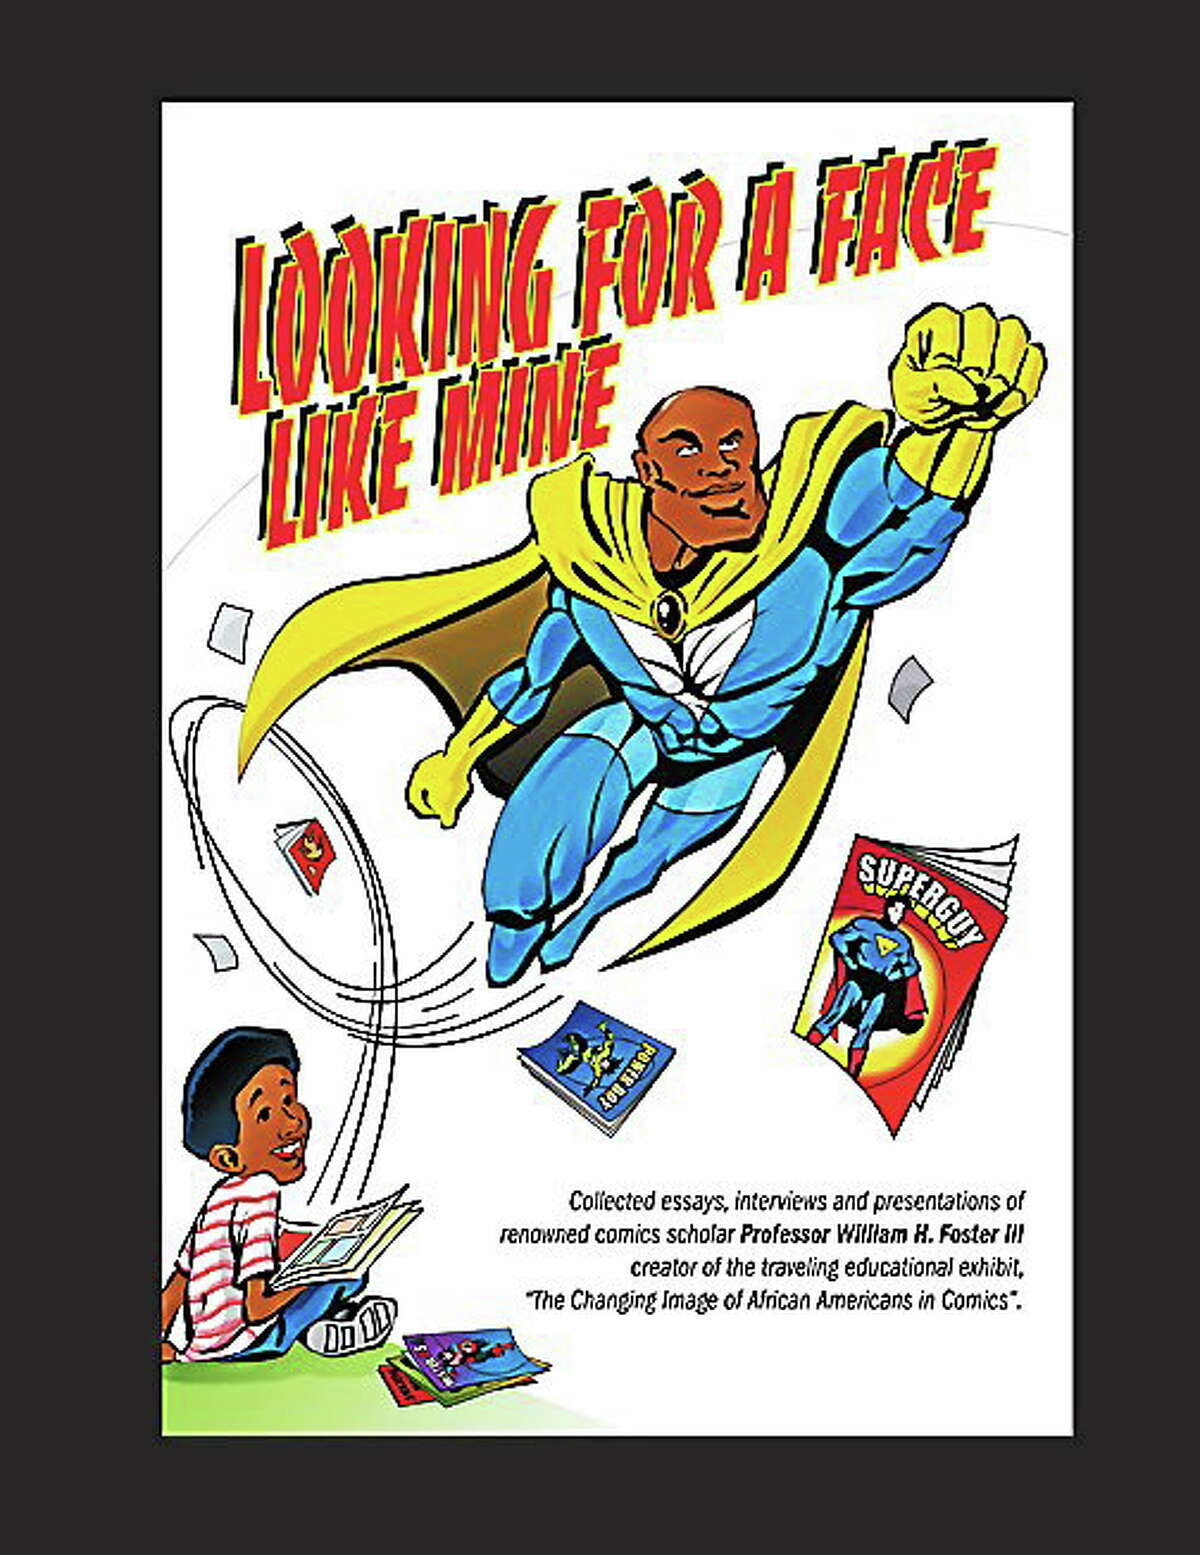 A comic book from William Foster III of Middletown's collection.